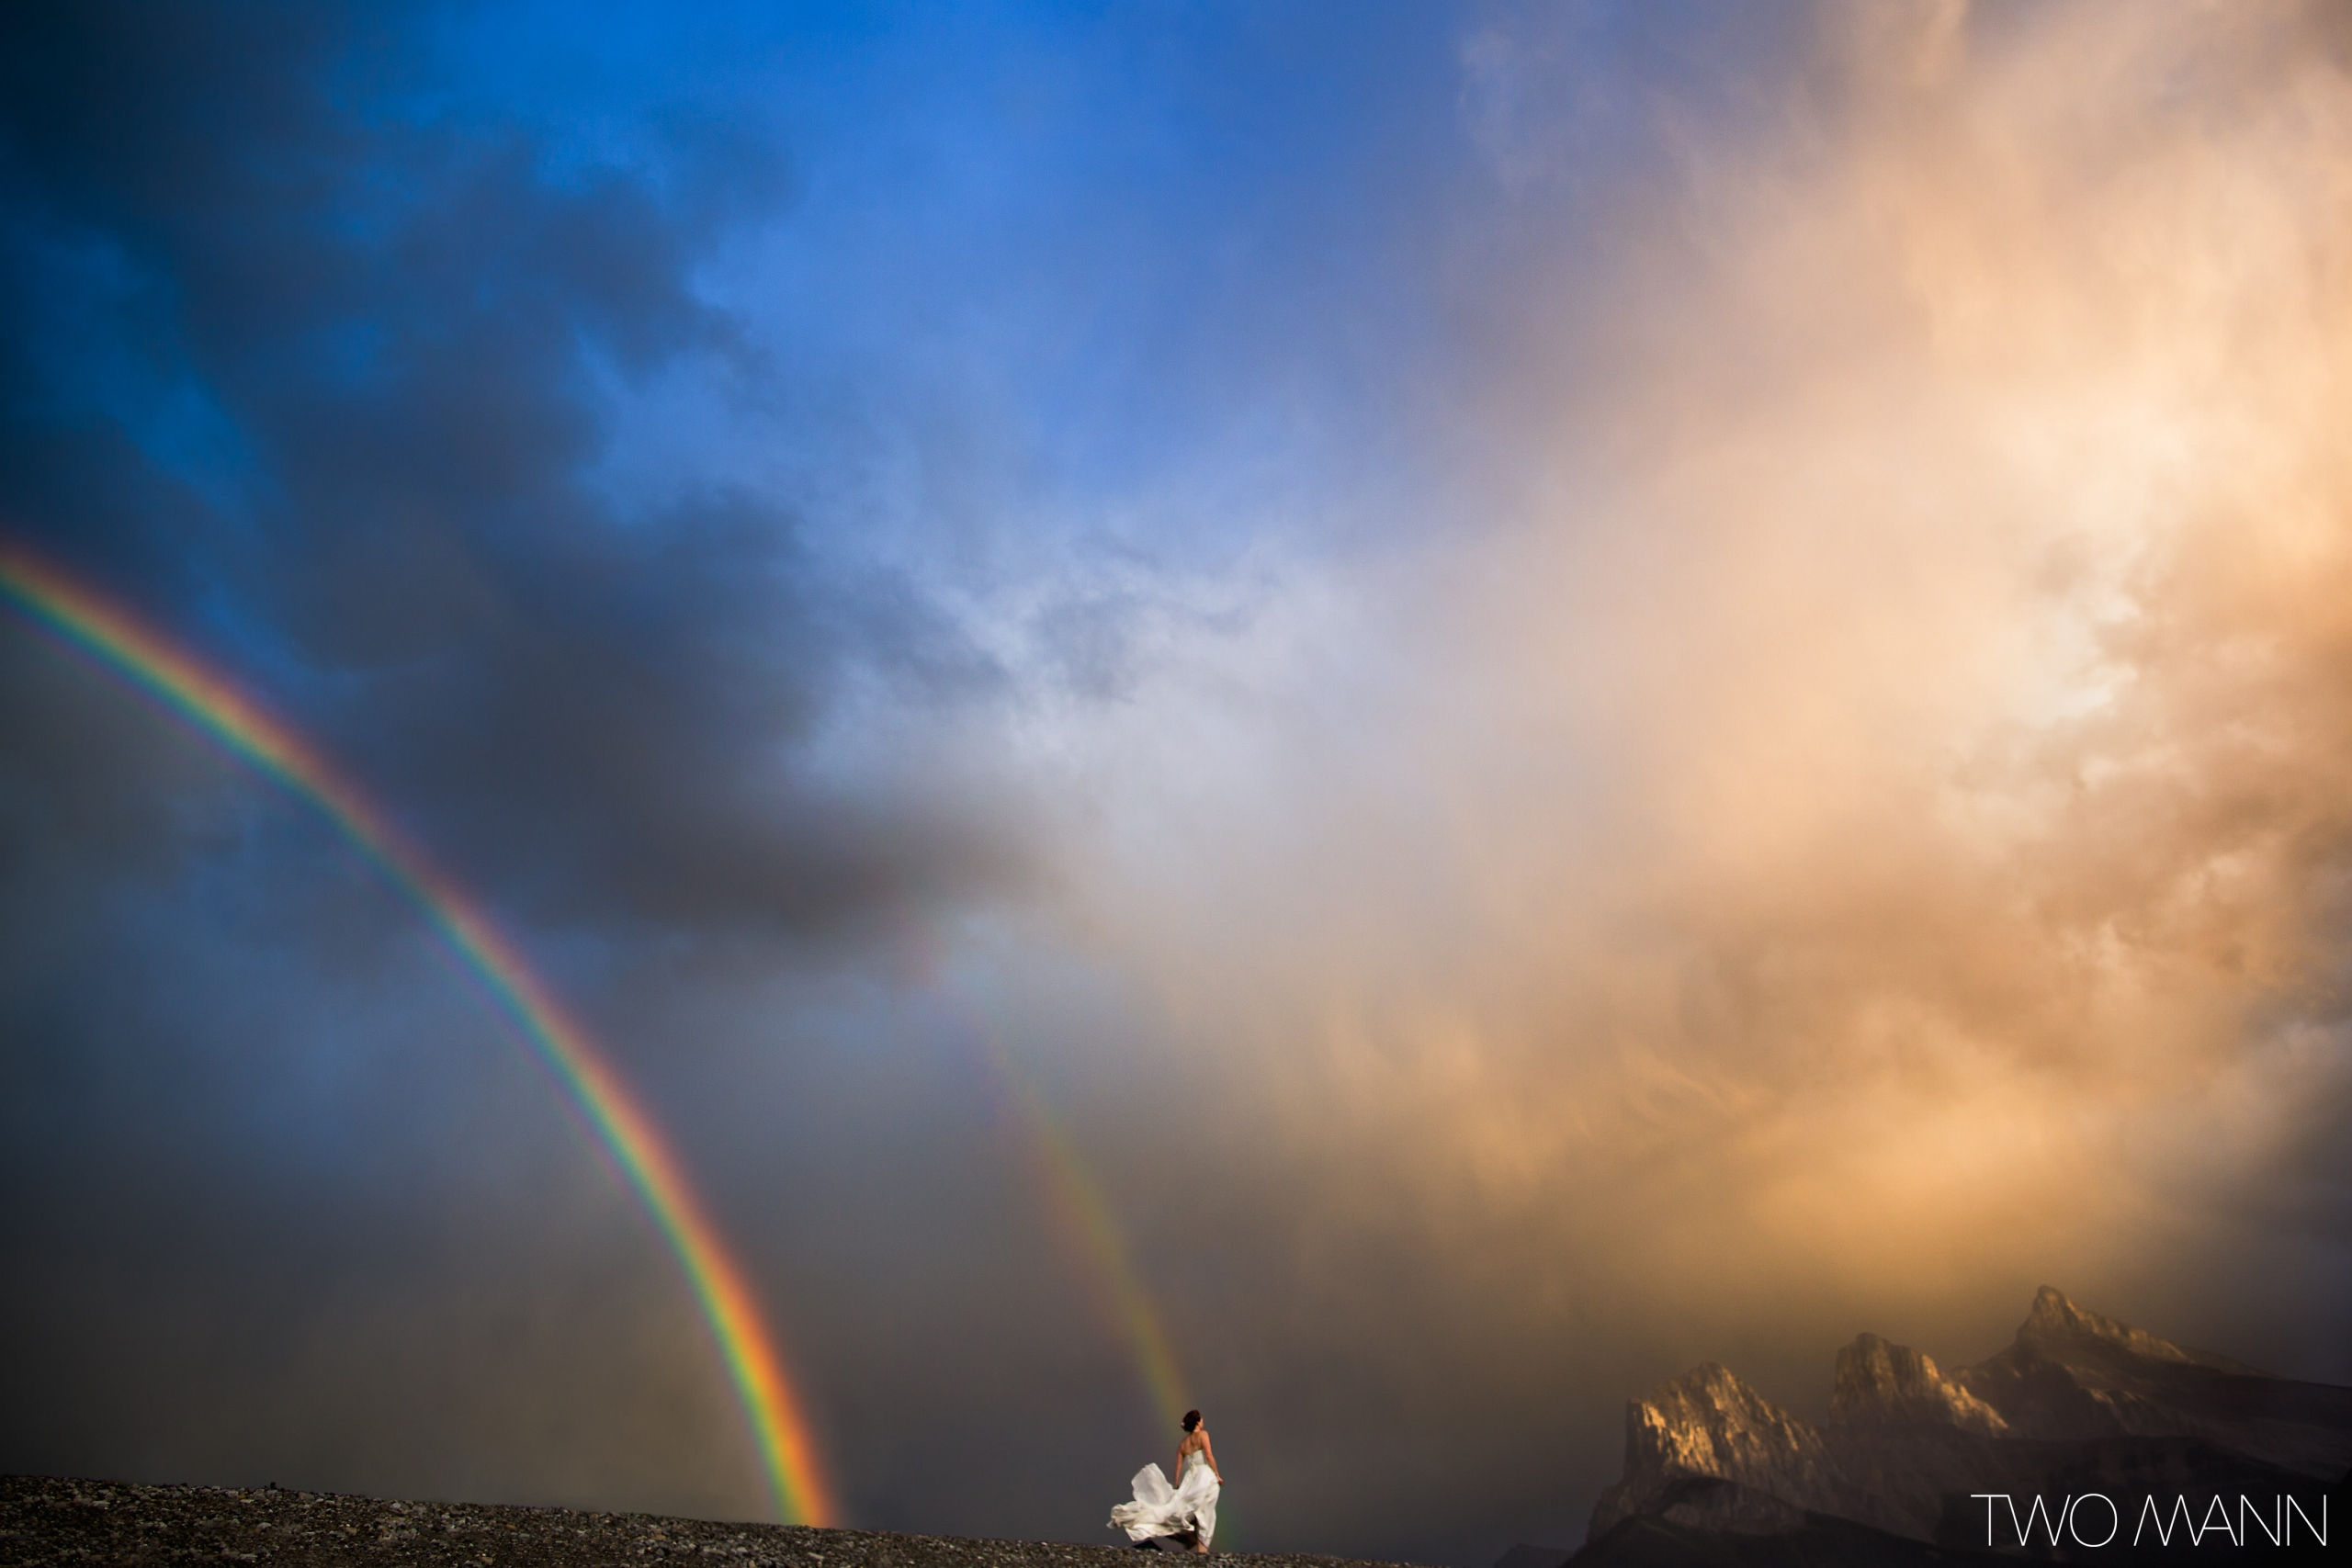 bride in wedding dress on mountain top with double rainbow in sky